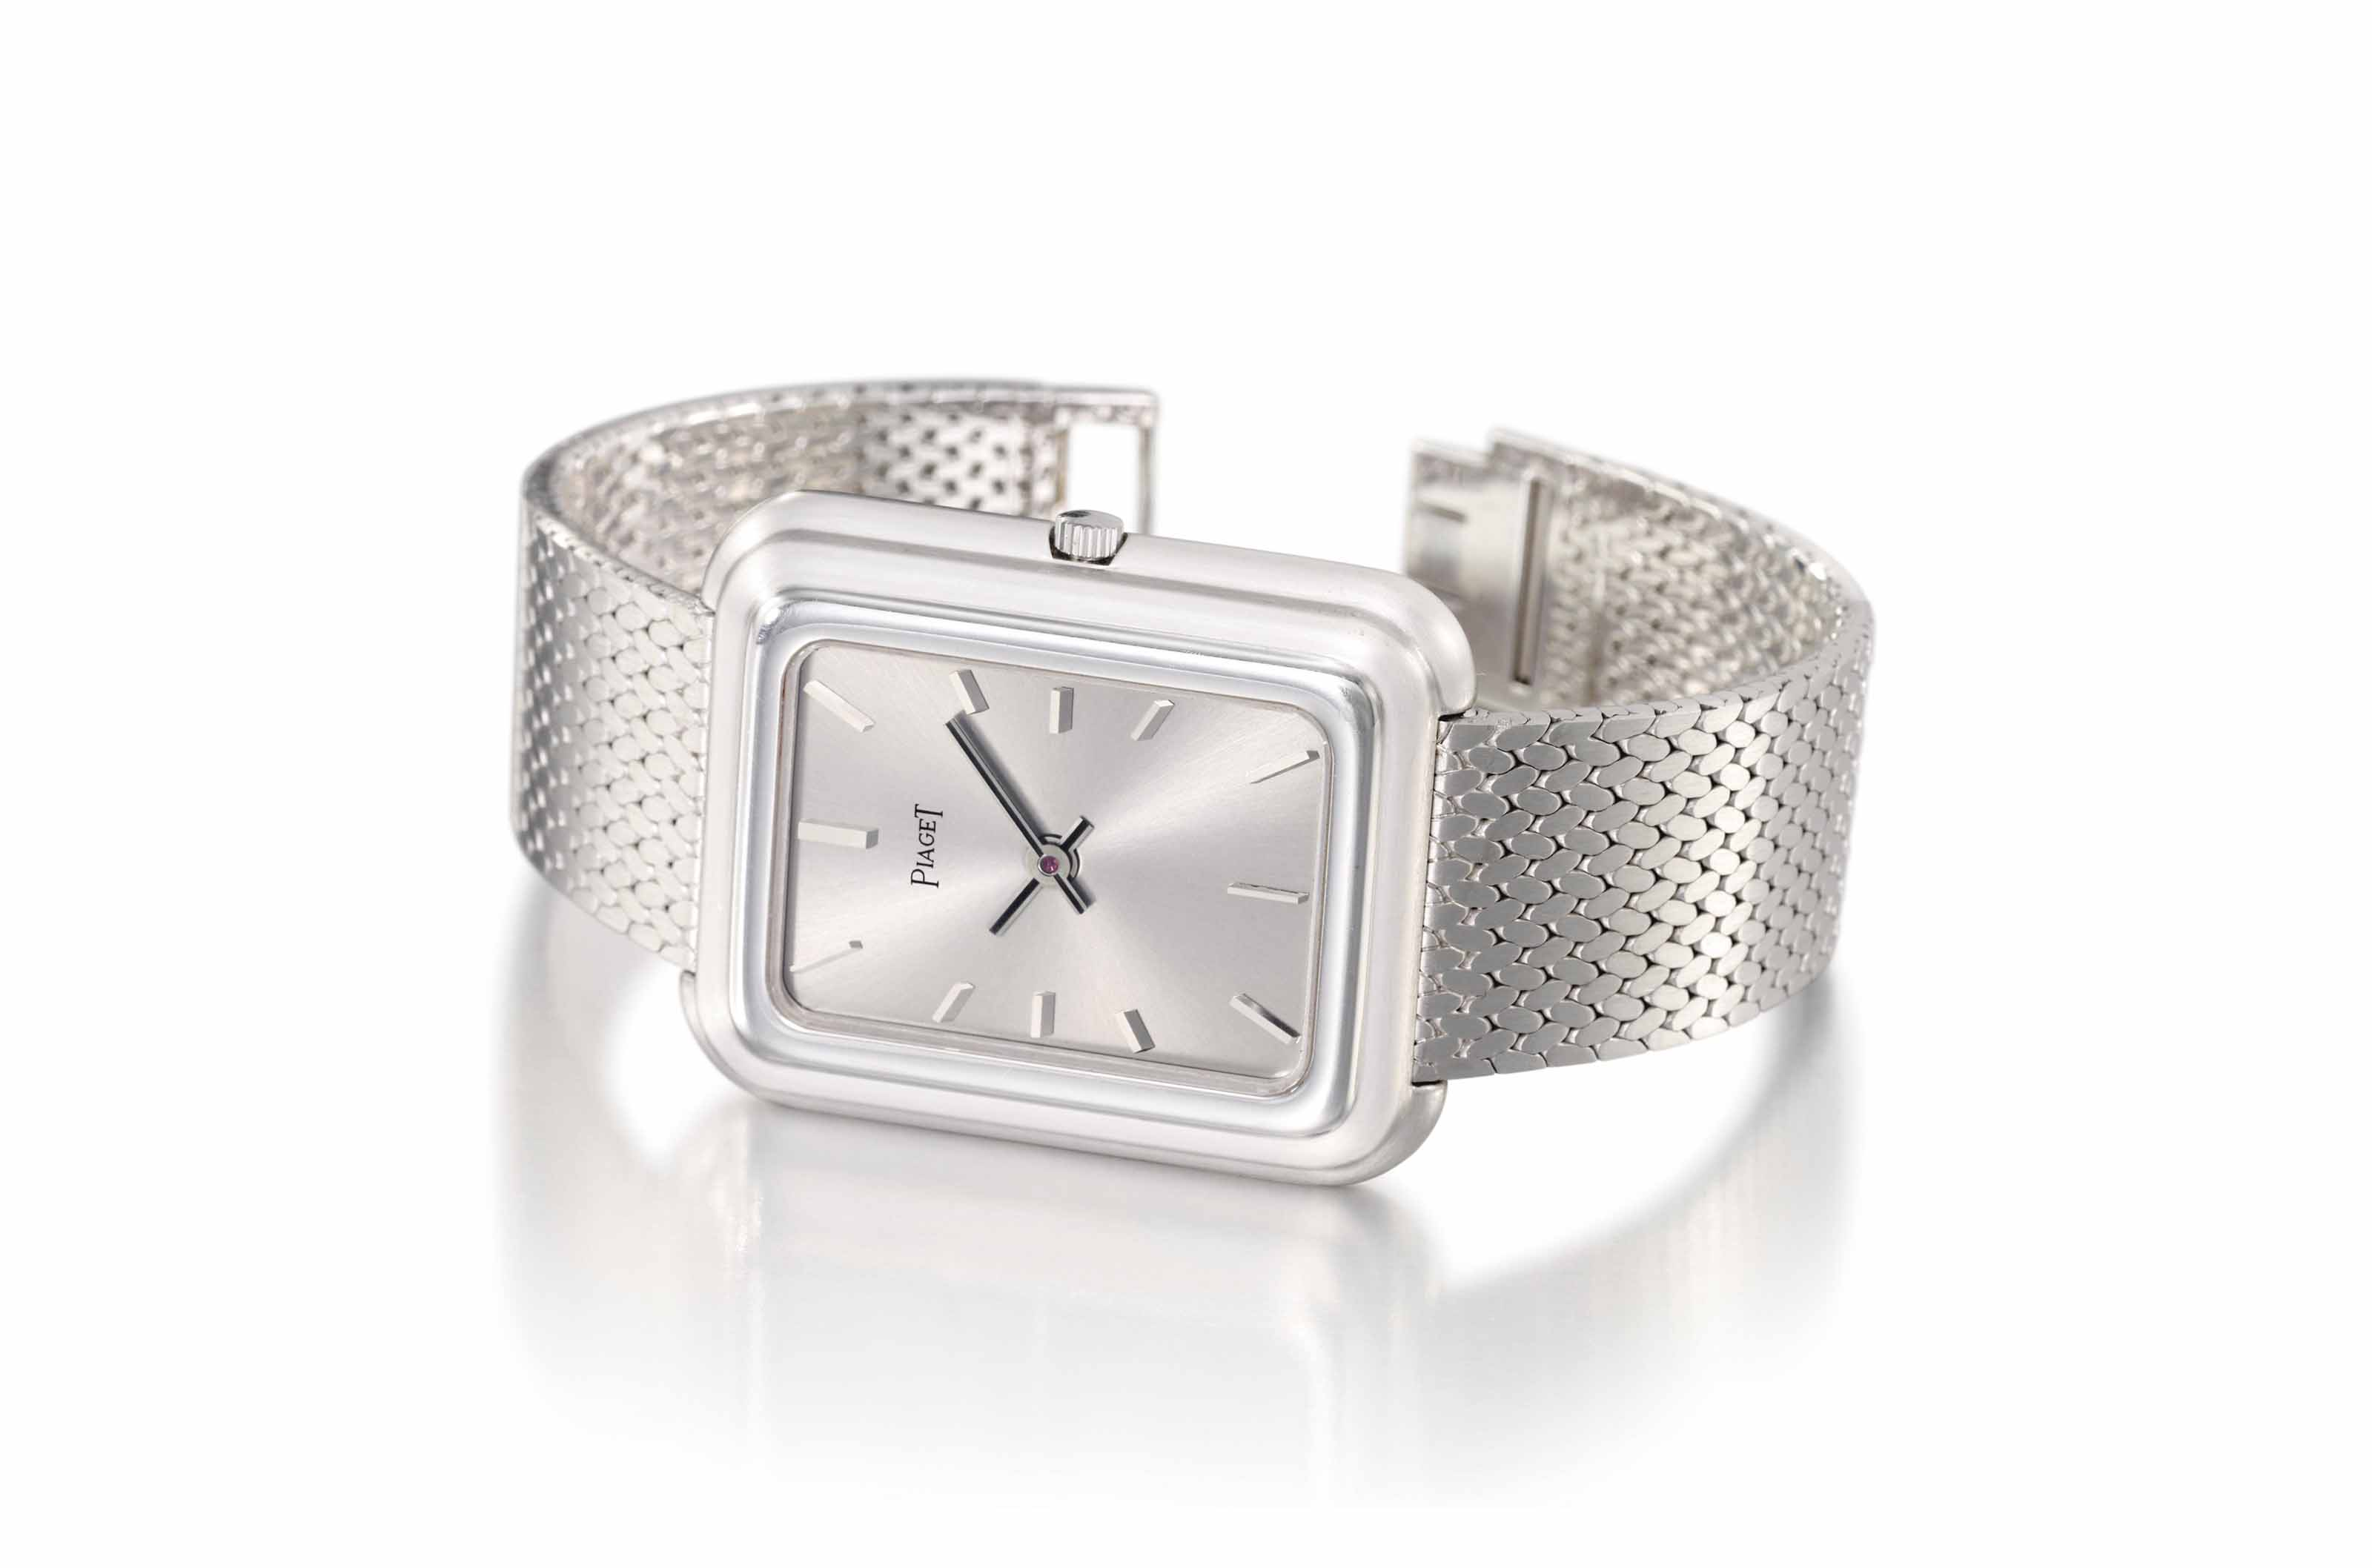 3b8db7334d8 Piaget. A large and unusual 18K white gold rectangular wristwatch ...